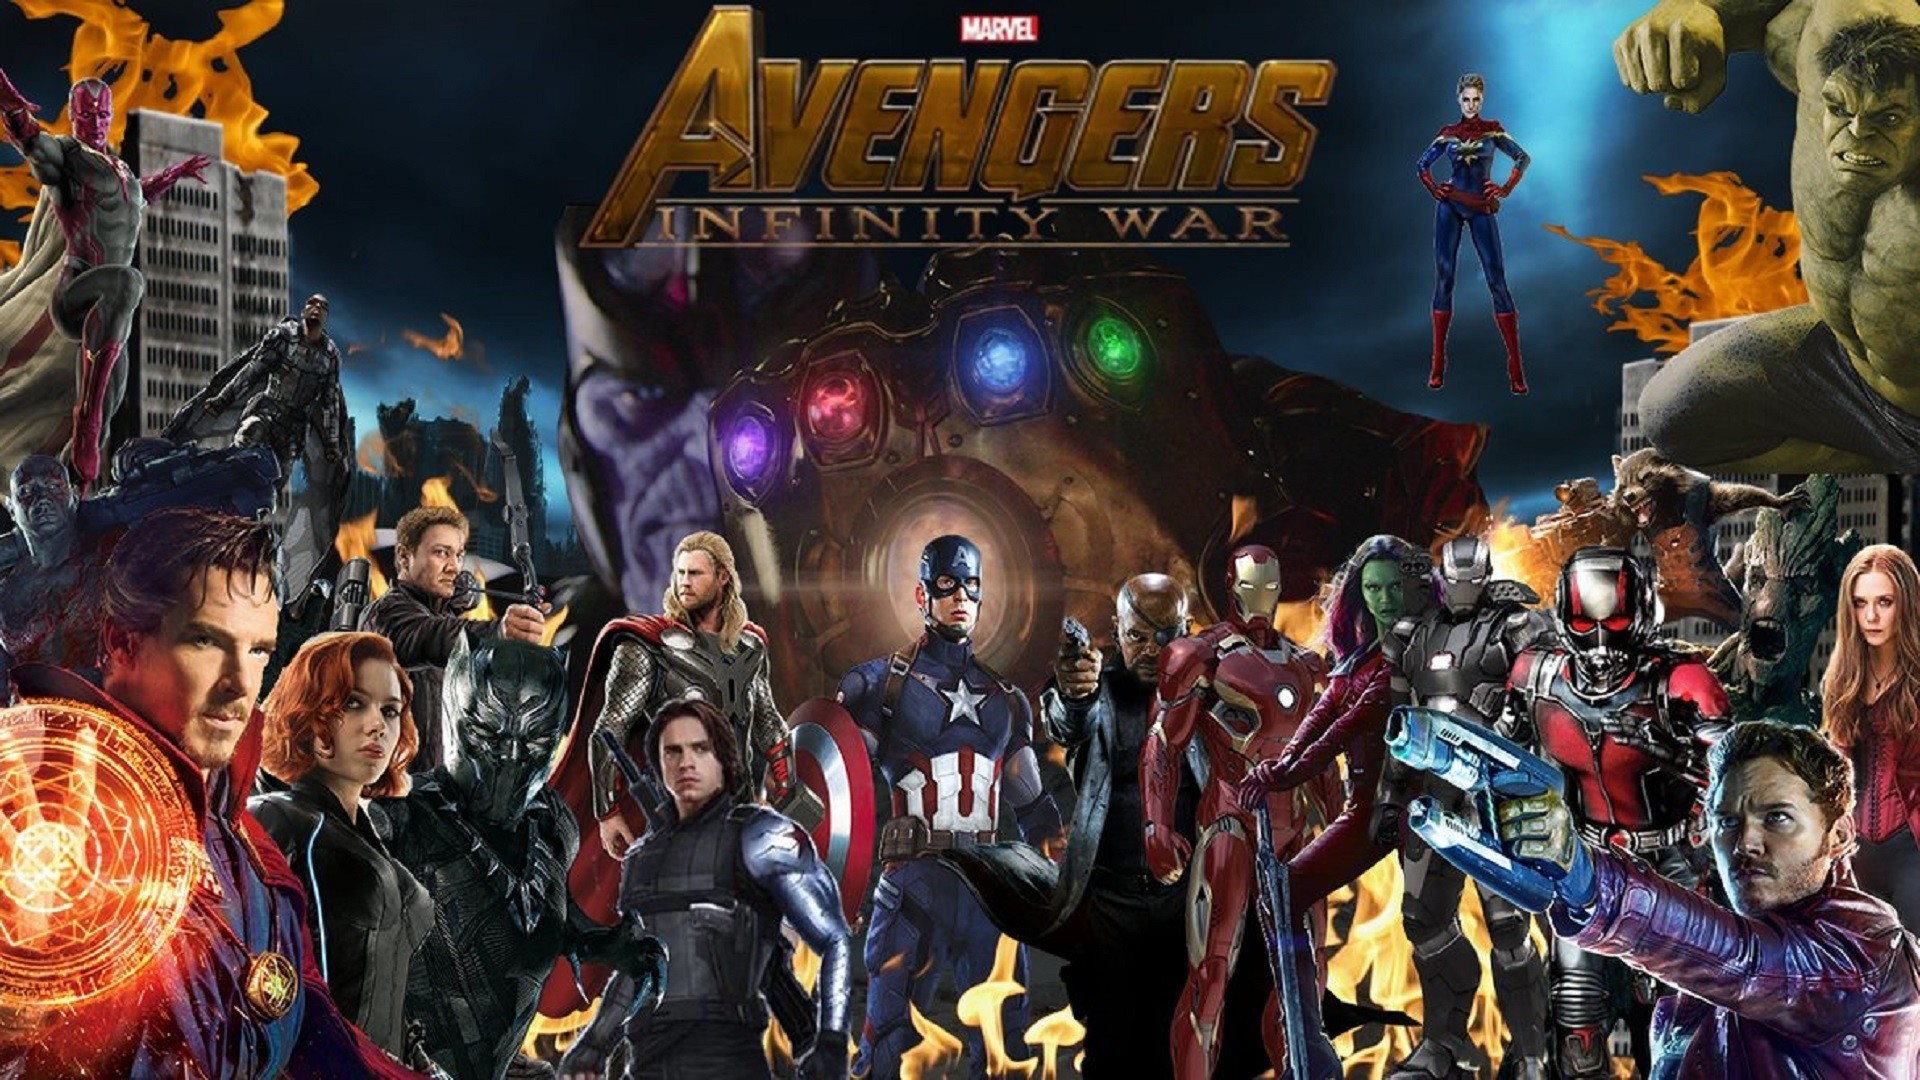 1920x1080 Avengers Infinity War latest Hd Wallpapers · Download · iPad .